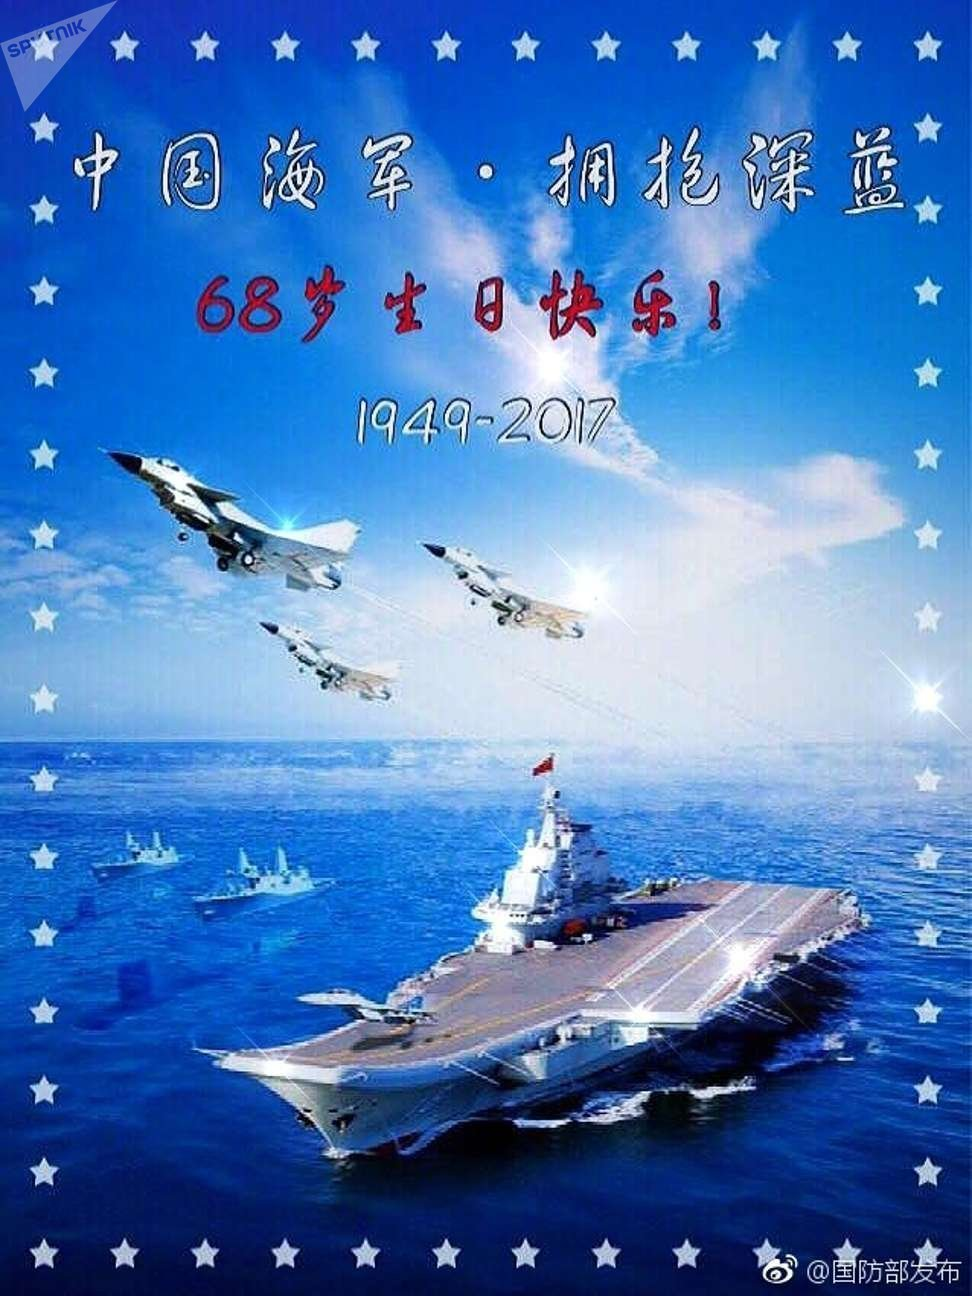 Chinese Defense Ministry Poster